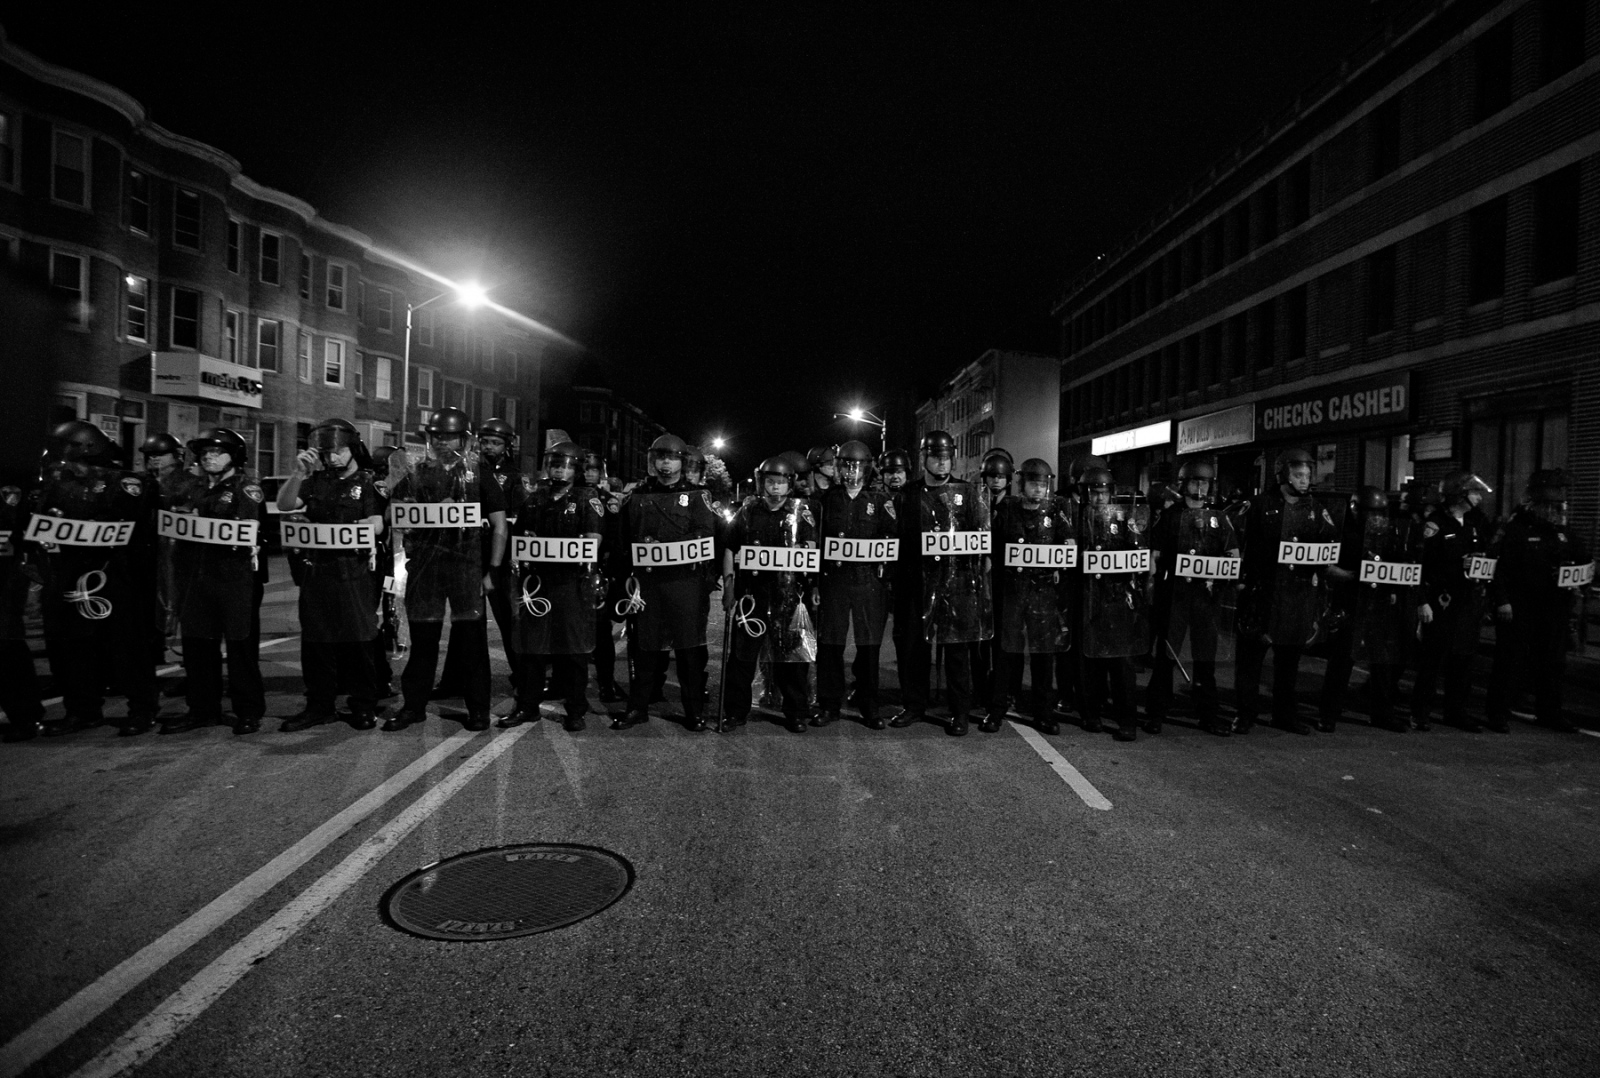 Baltimore, MD-Police in riot gear forms a line to impress protestors right before the curfew time while demanding the protesters to go home.